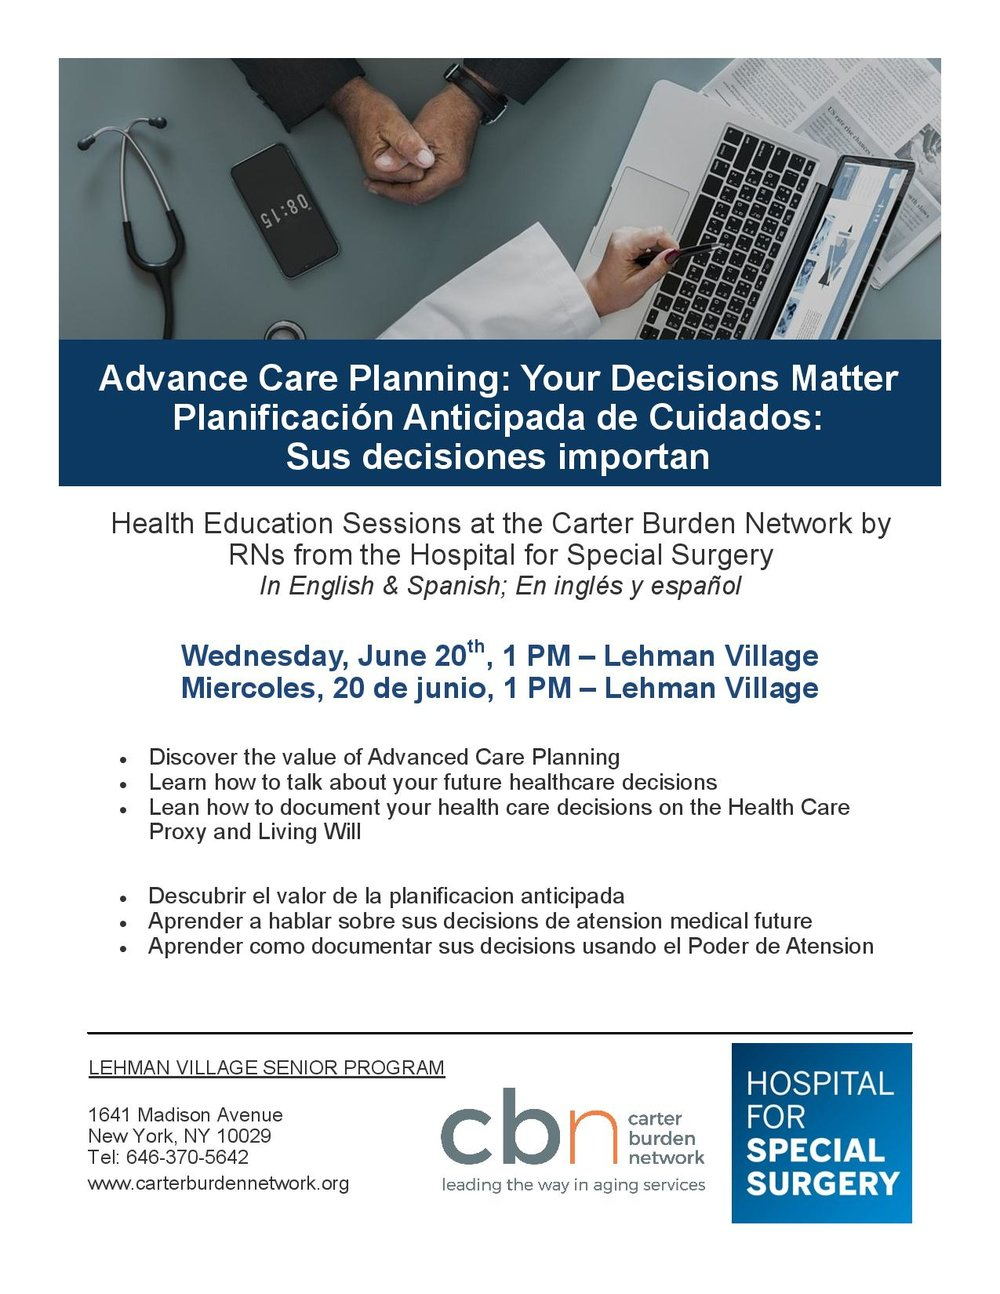 Advance Care Planning session_Hospital for Special Surgery_Lehman flyer ...-page-001.jpg